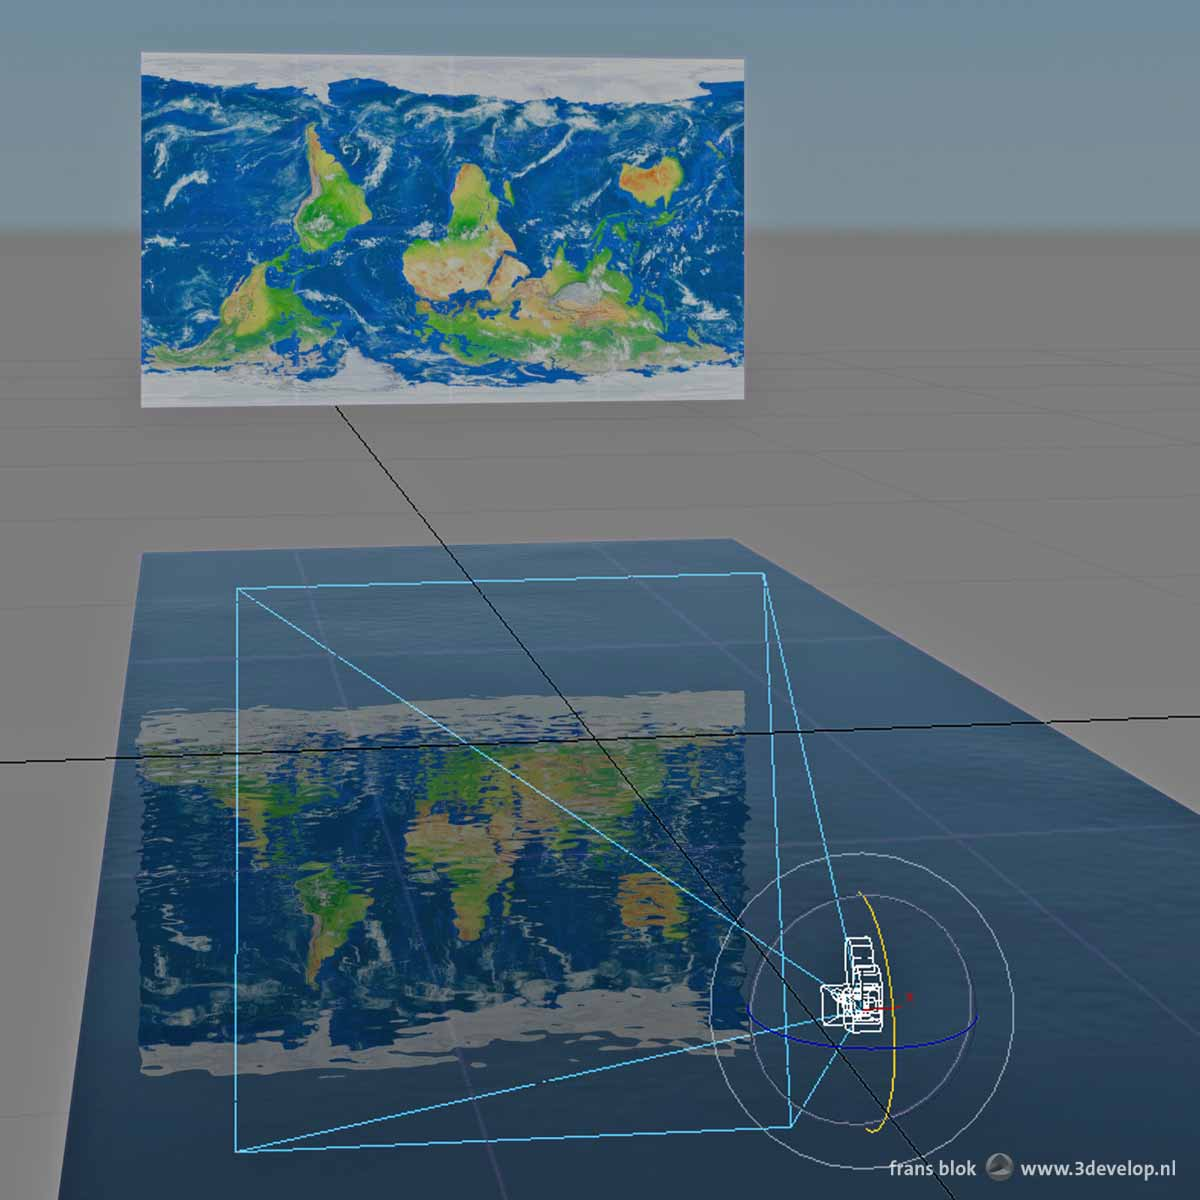 Setup with a camera and a slightly undulating reflective water surface in 3ds max to create a wavy world map